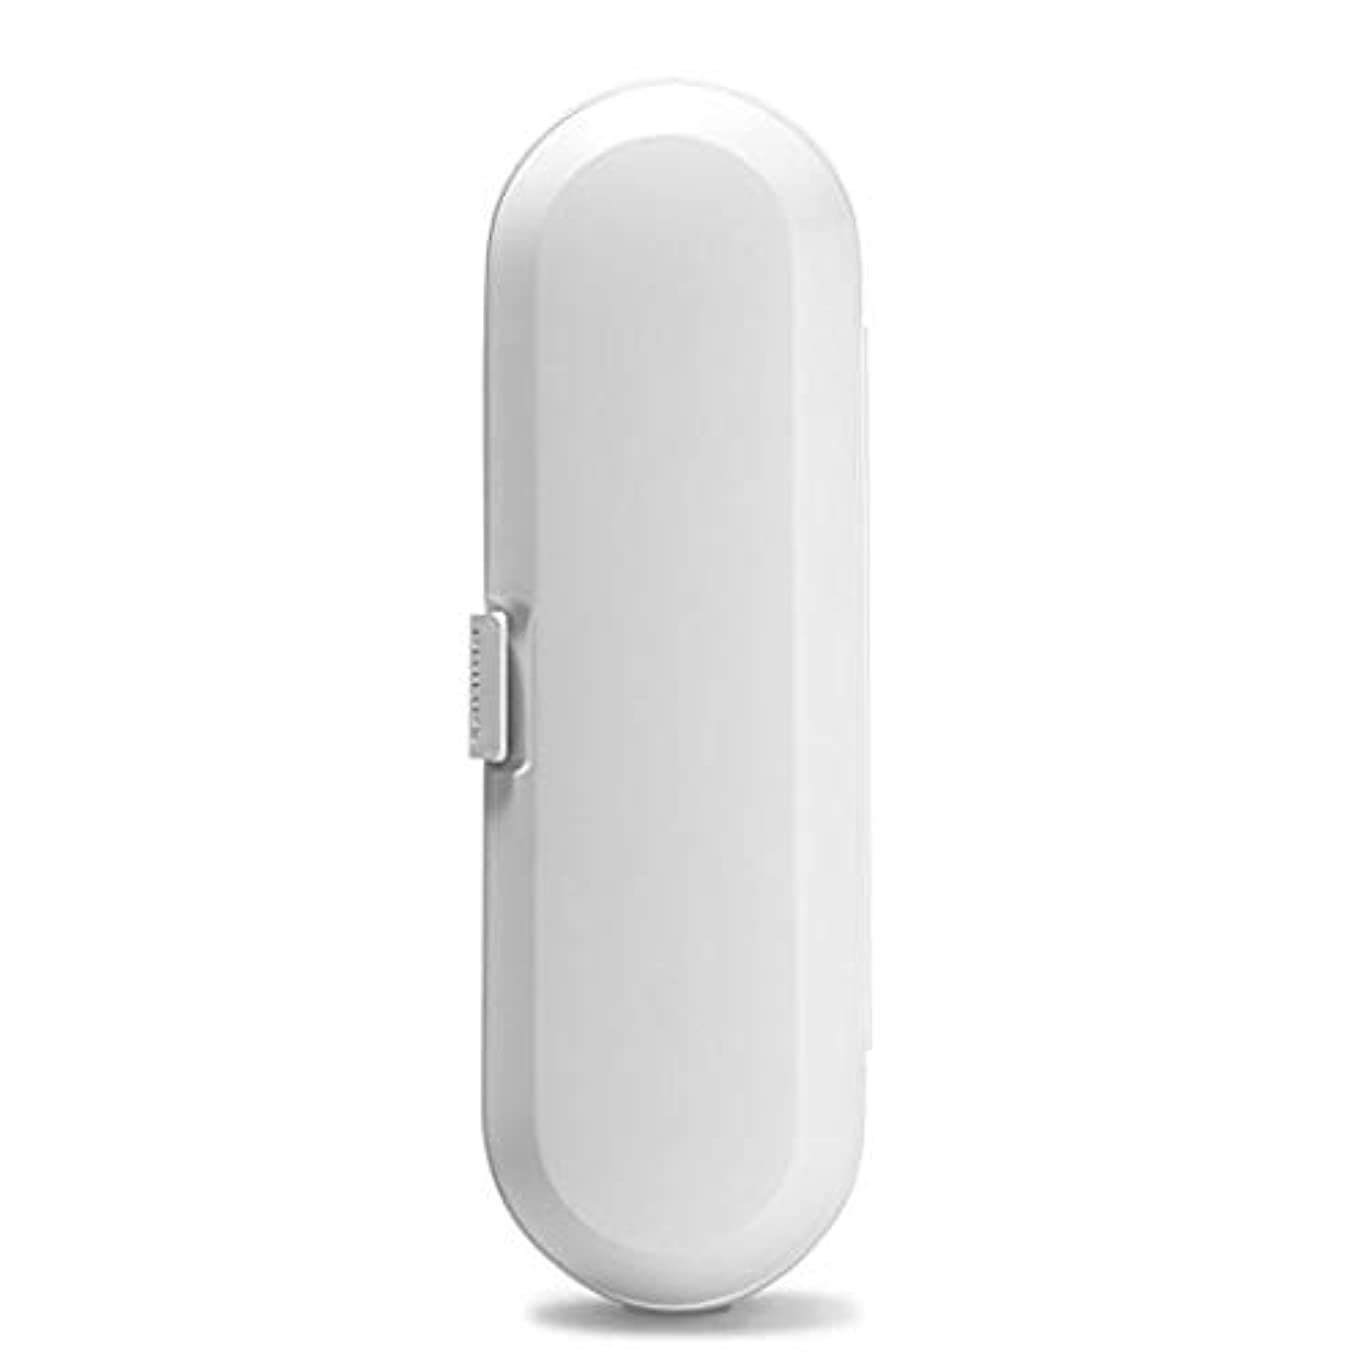 祭りソーシャルリーダーシップPhilips Sonicare Flexcare & Healthy White Plastic Travel Case by Philips [並行輸入品]